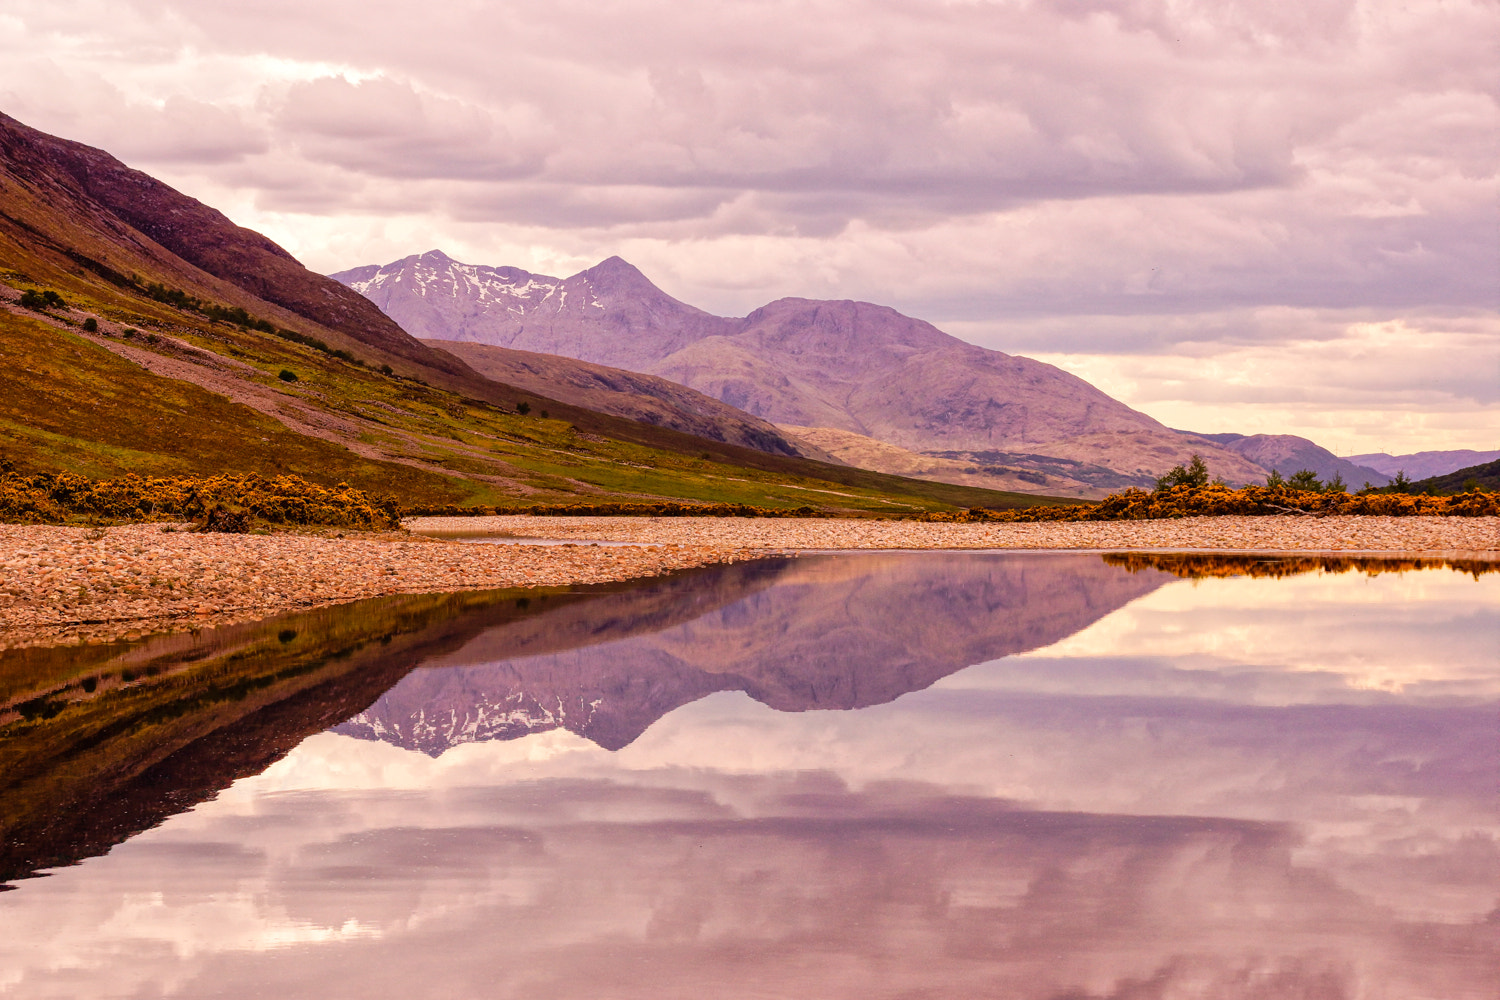 Photograph Loch Etive Reflections by RALPH  on 500px